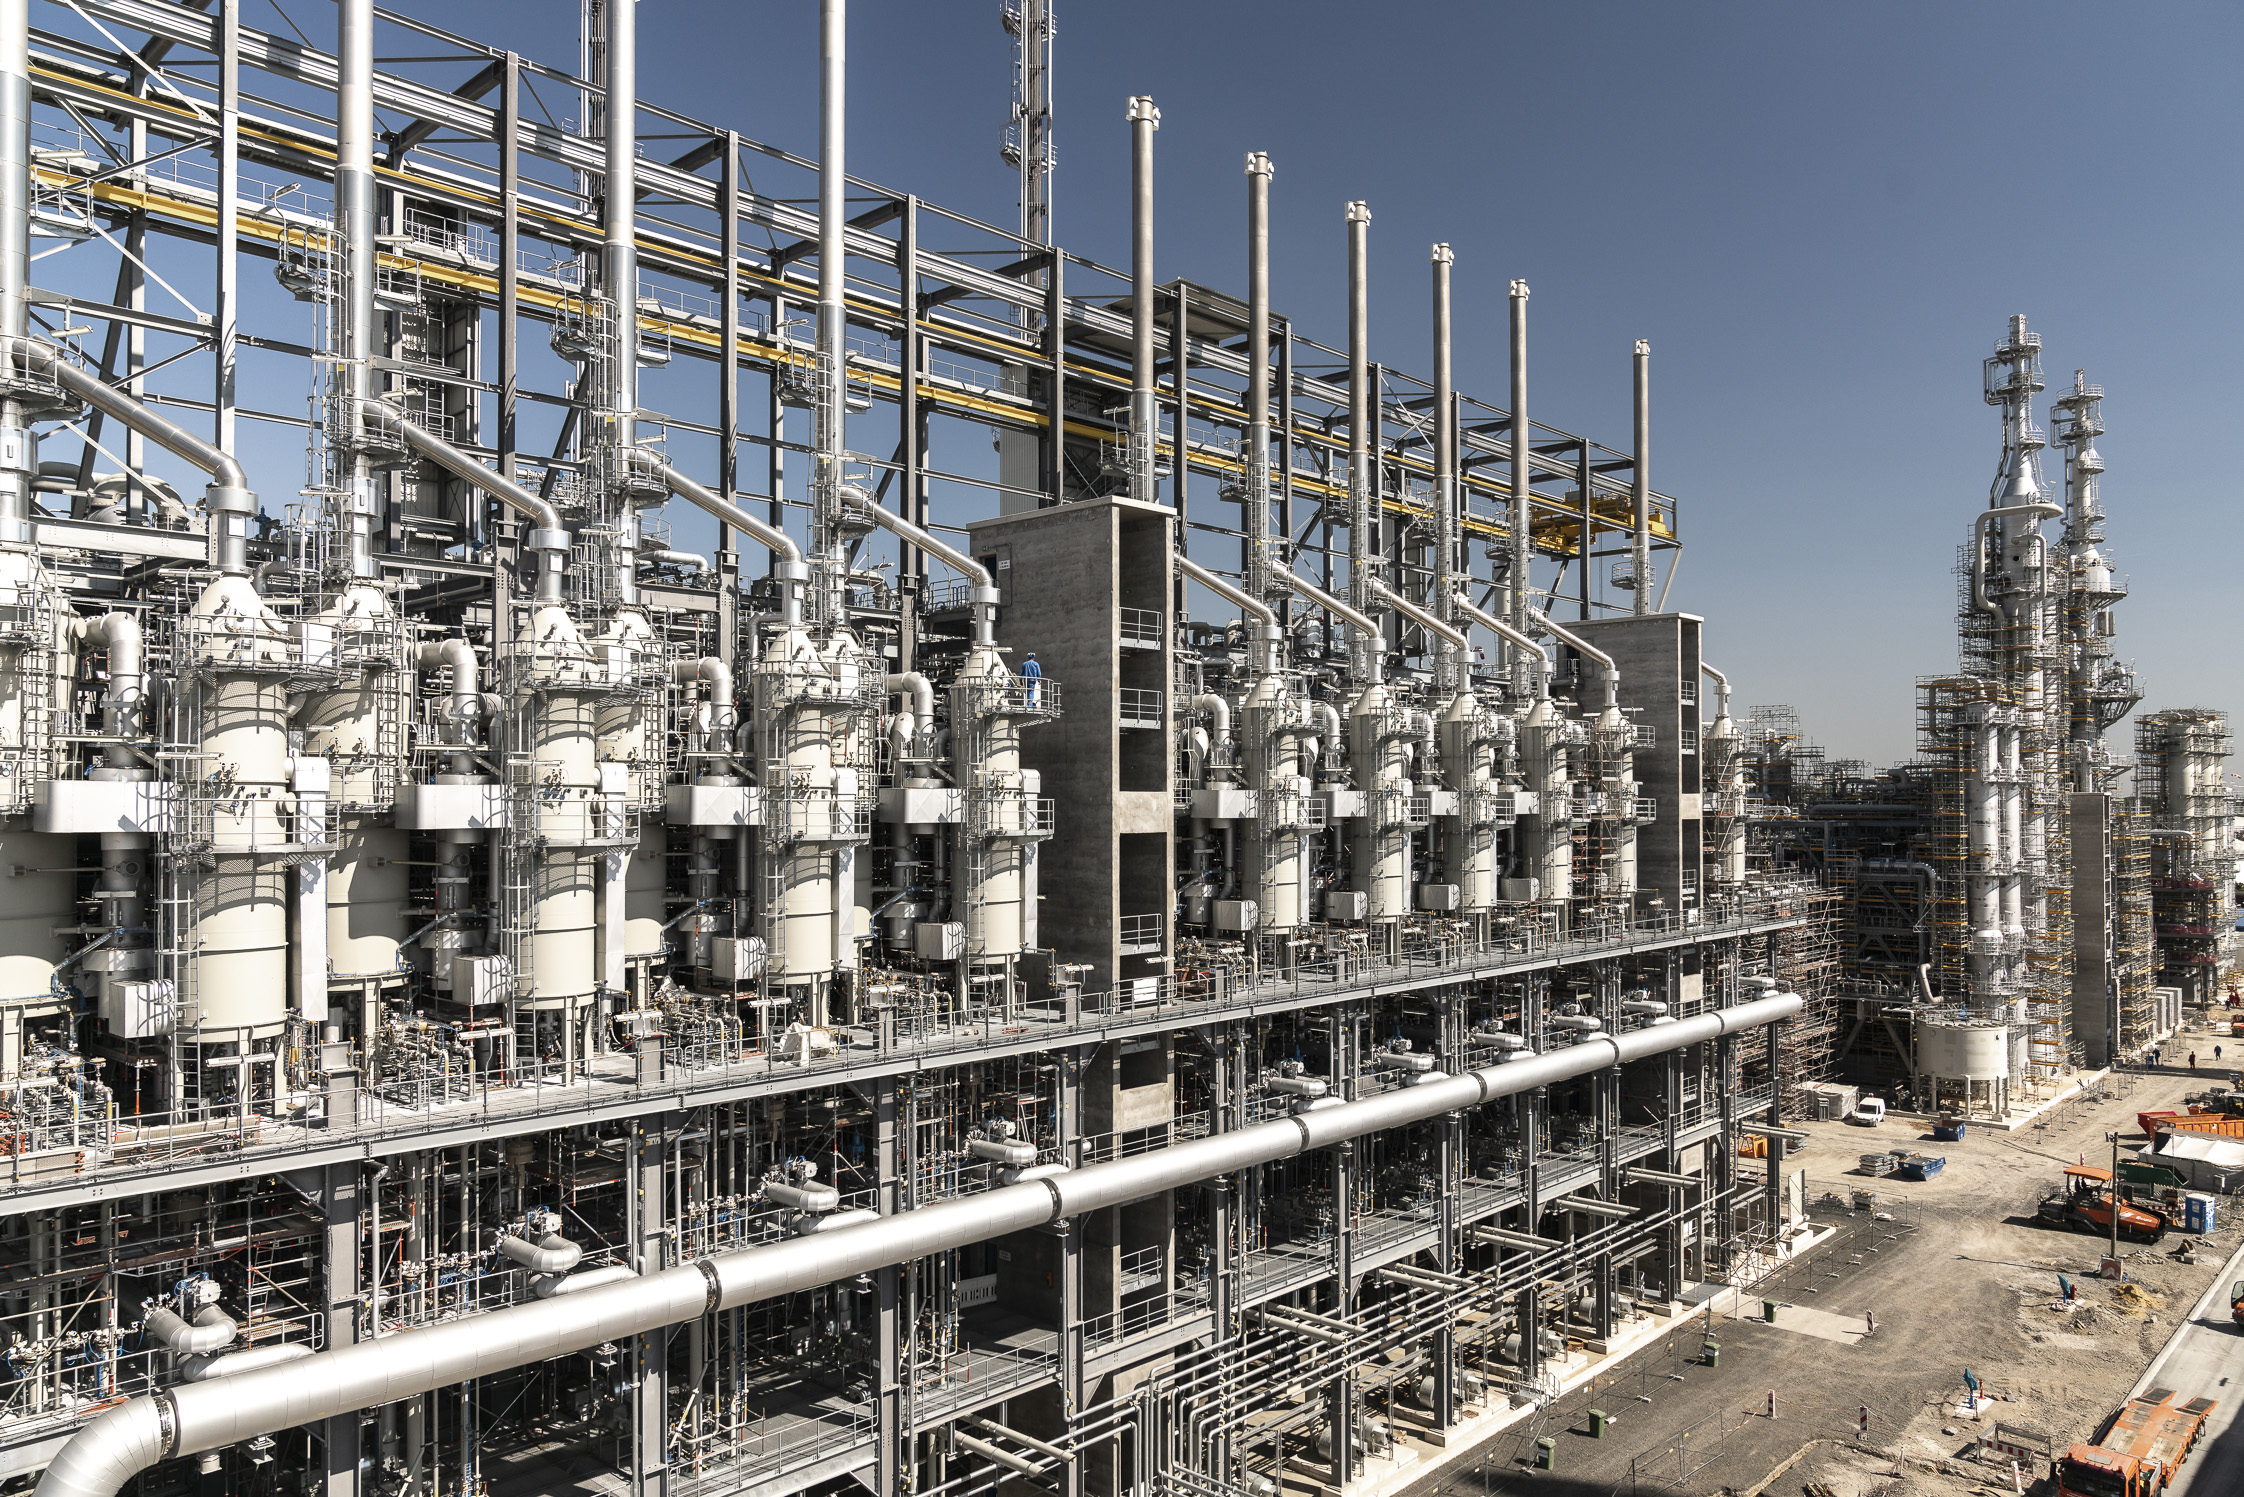 Sikla modular support frames and pipe shoes a BASF world-scale production chemical plant